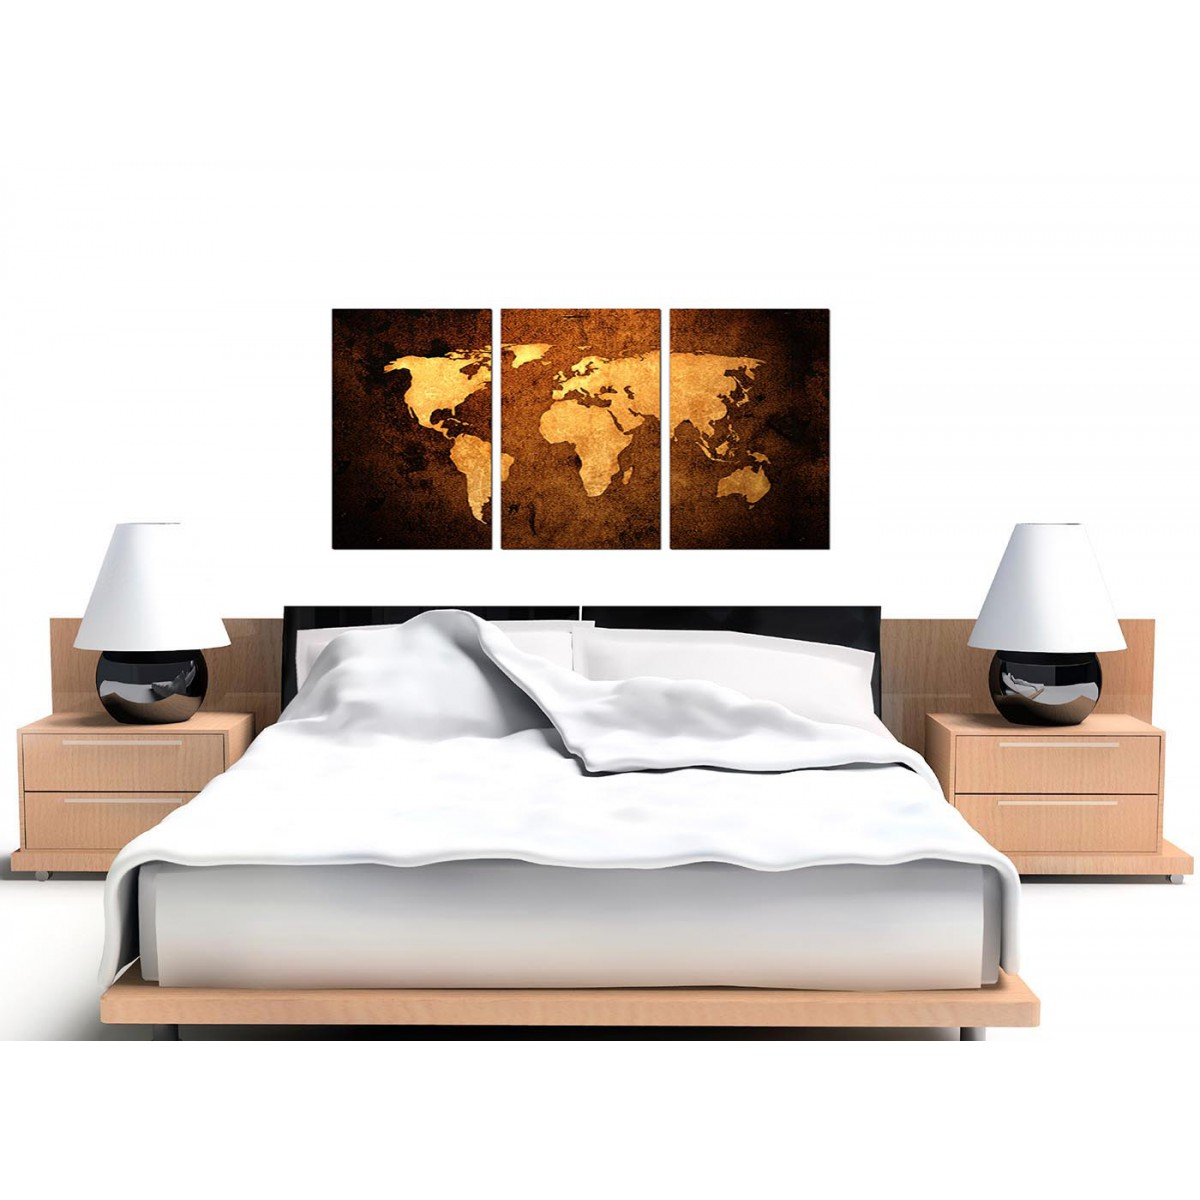 World map canvas wall art set of 3 for your bedroom modern vintage old world map brown cream canvas set of 3 125cm 3188 gumiabroncs Images